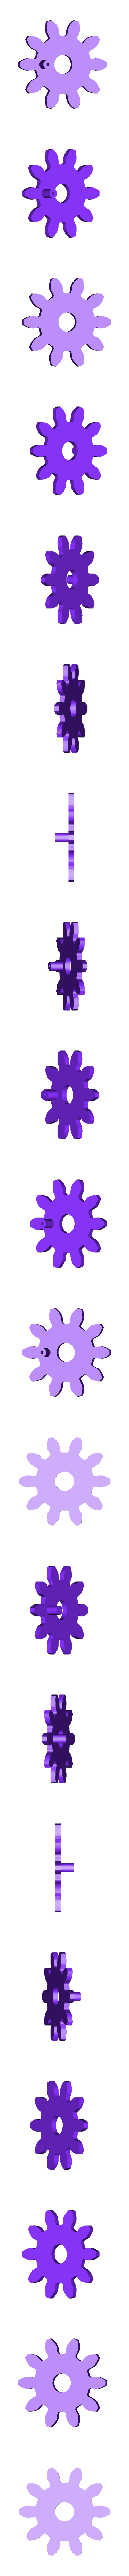 Gear_left_Techy_Mechy_Mechanisms.stl Download free STL file Matt's Mechanism(Useless but alarmingly fun to play with) • 3D printable model, matthewdwulff